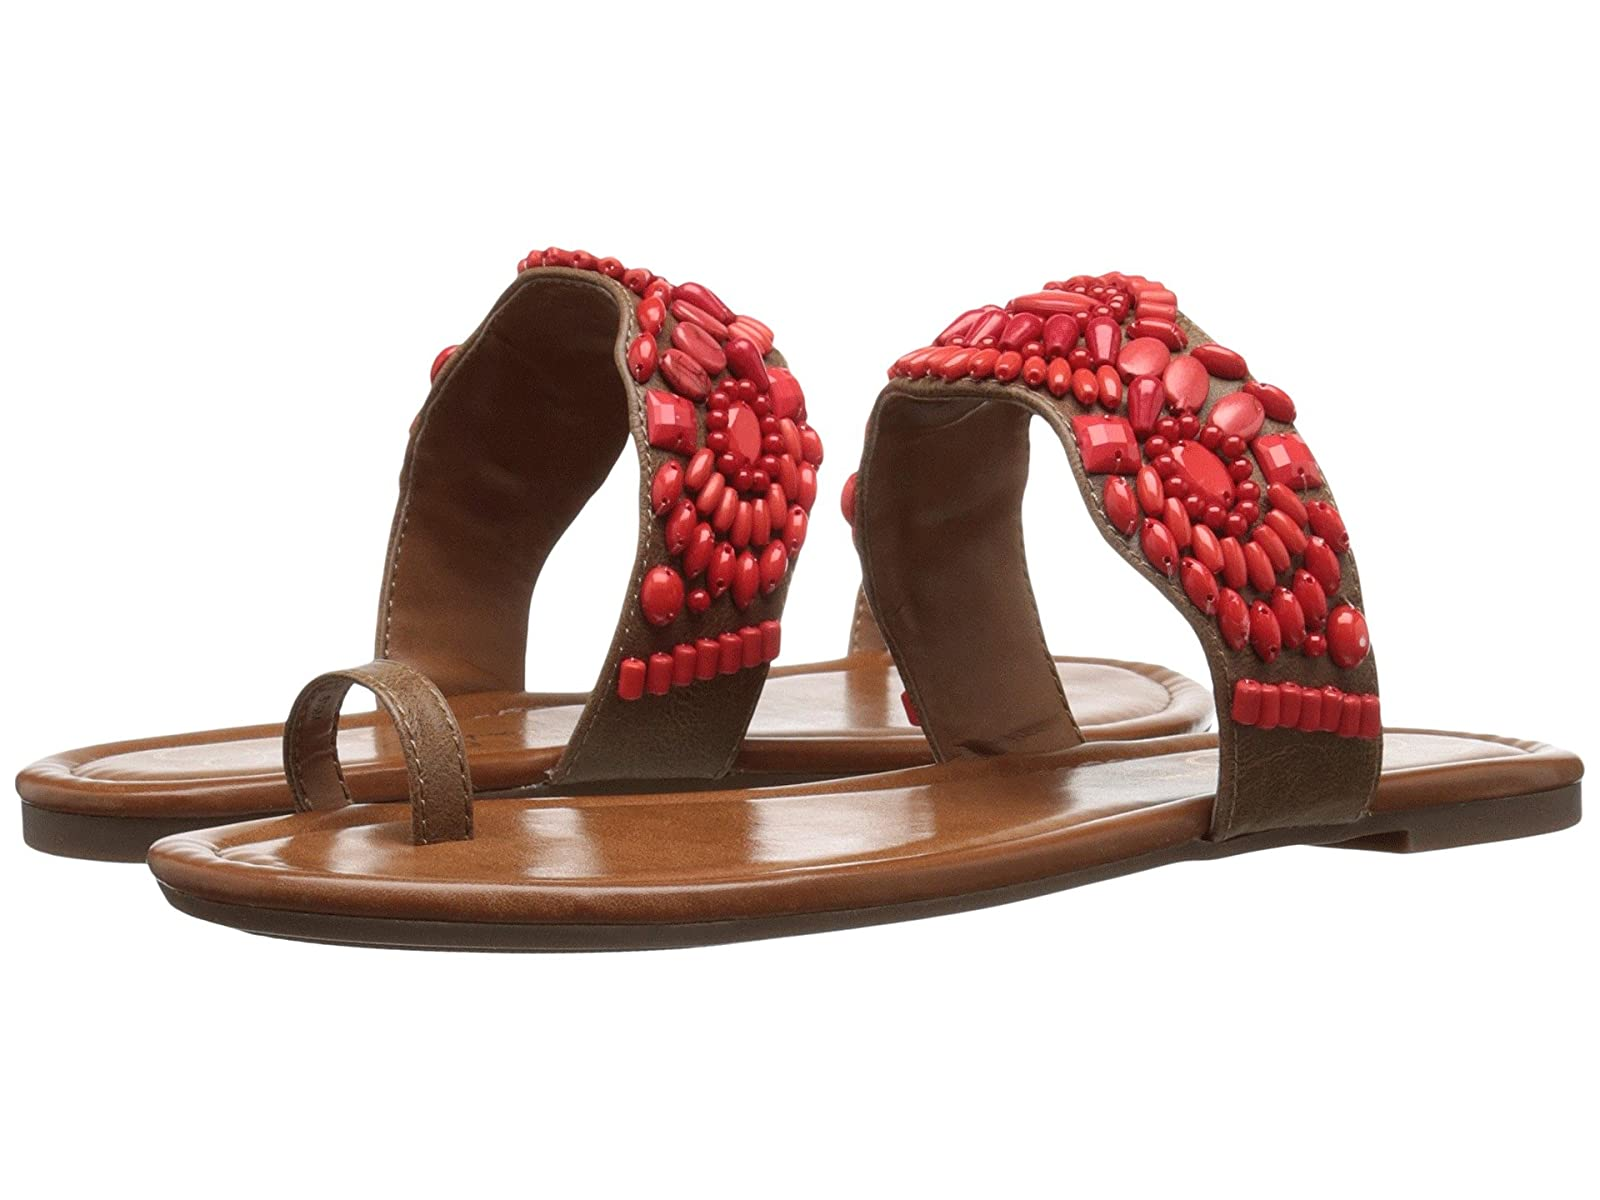 Jessica Simpson RazzelCheap and distinctive eye-catching shoes